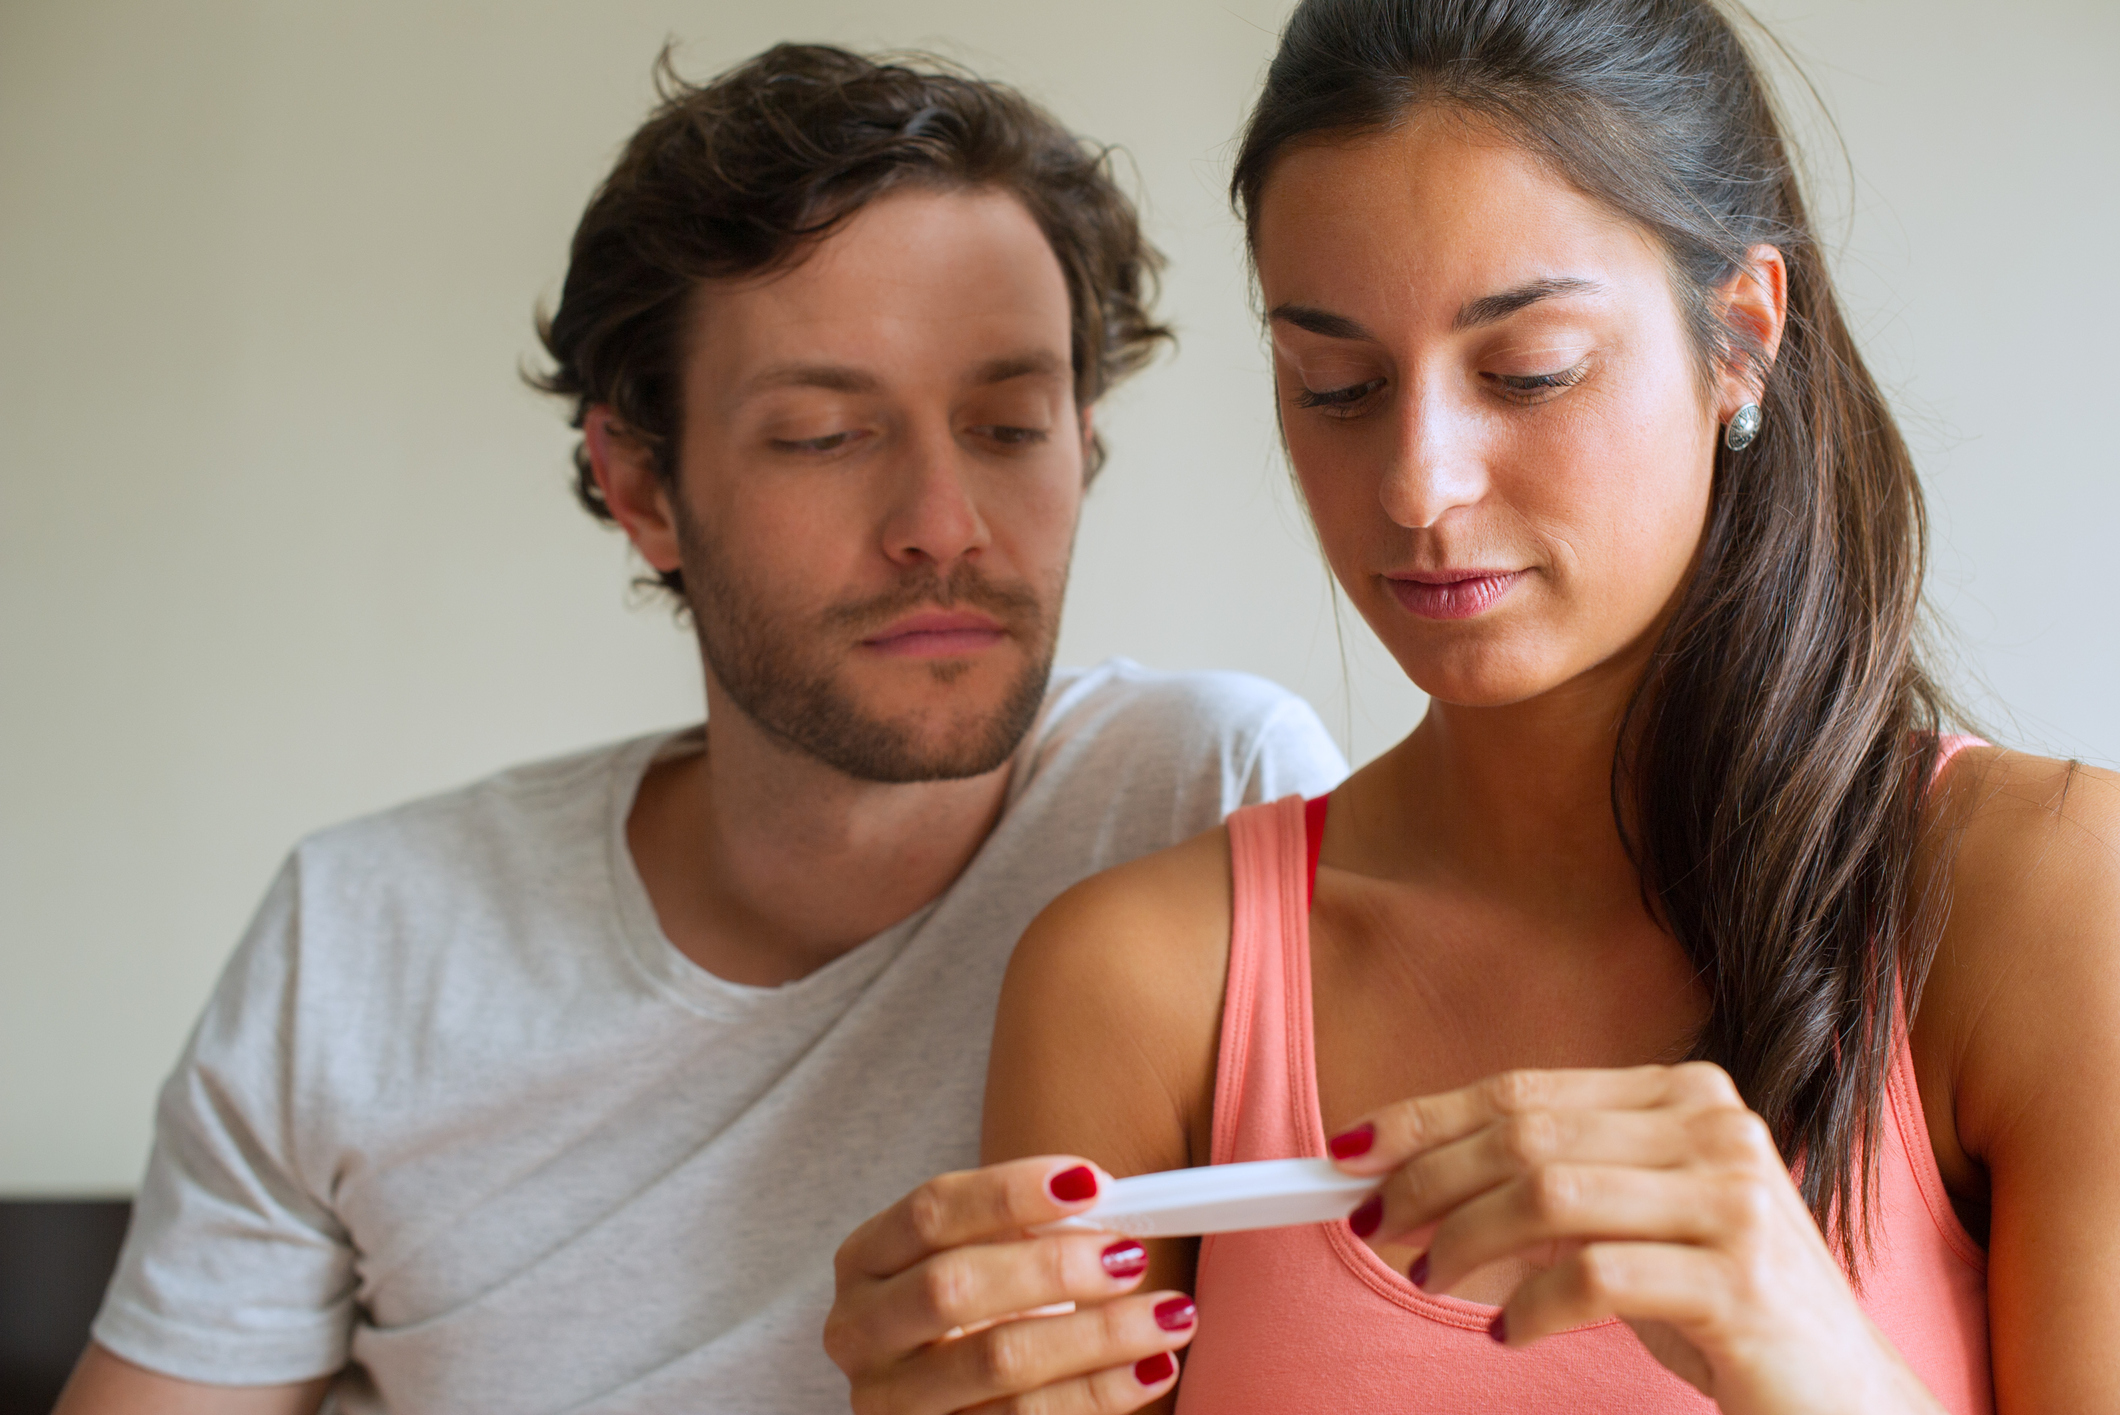 Couple looking at pregnancy test.